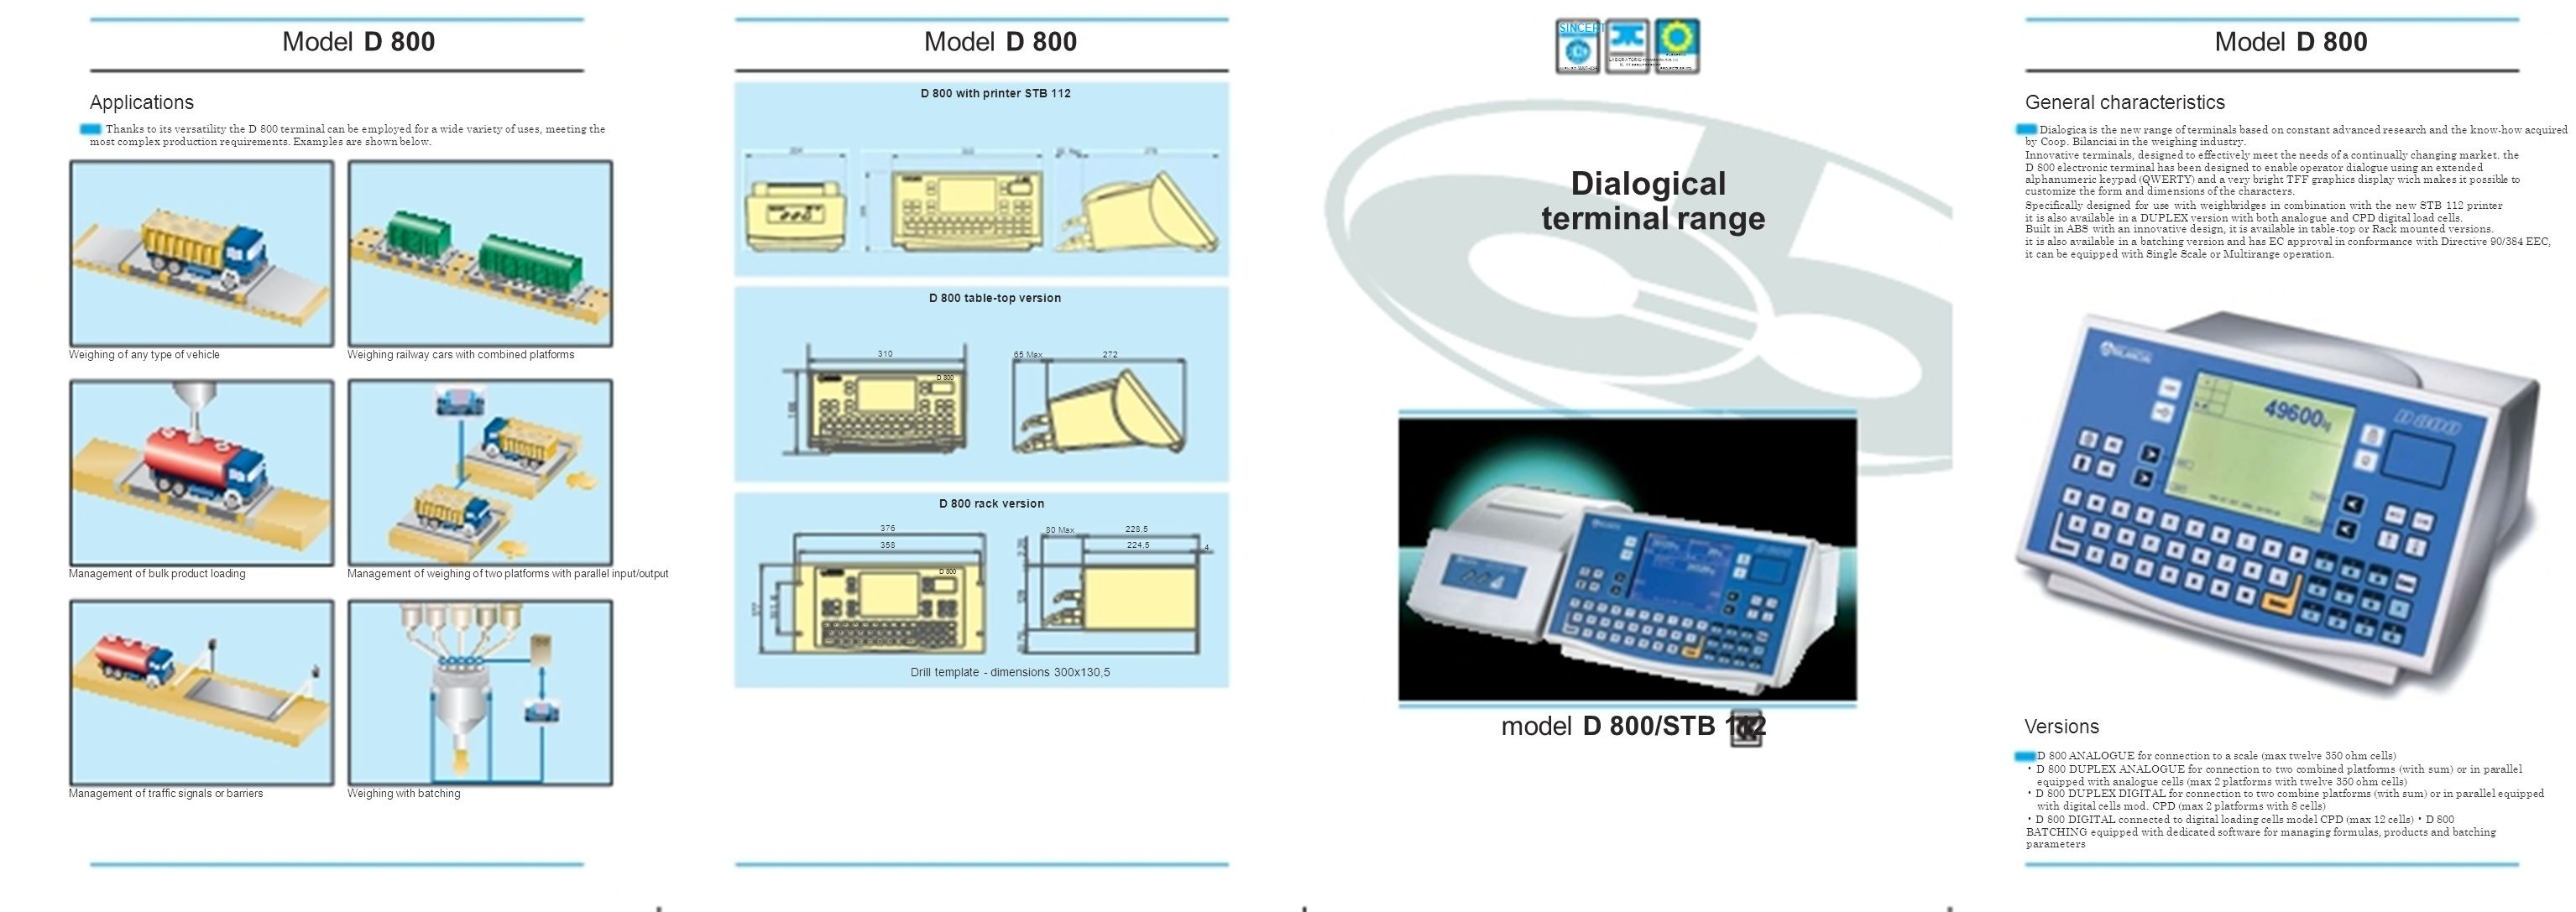 SINCERT Model D 800 EUROPEAN E LABORATORIO COMMISSION D.G. XIII N. 44 SPRINT SPECIFIC UNI EN ISO 9001-034 PROJECTS SPI 072 D 800 with printer STB 112